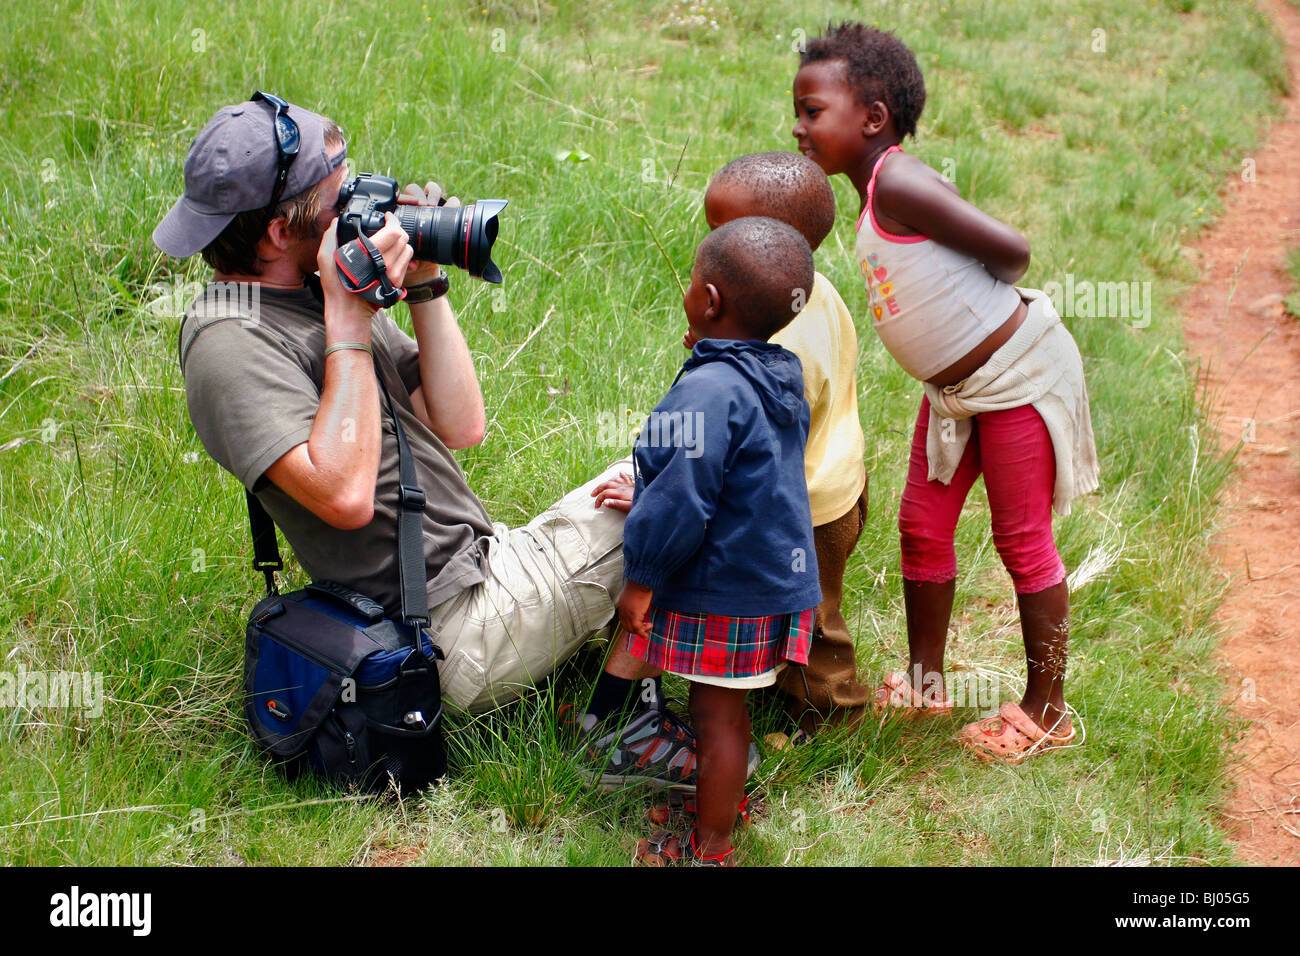 Photographer in Lesotho with curious children - Stock Image